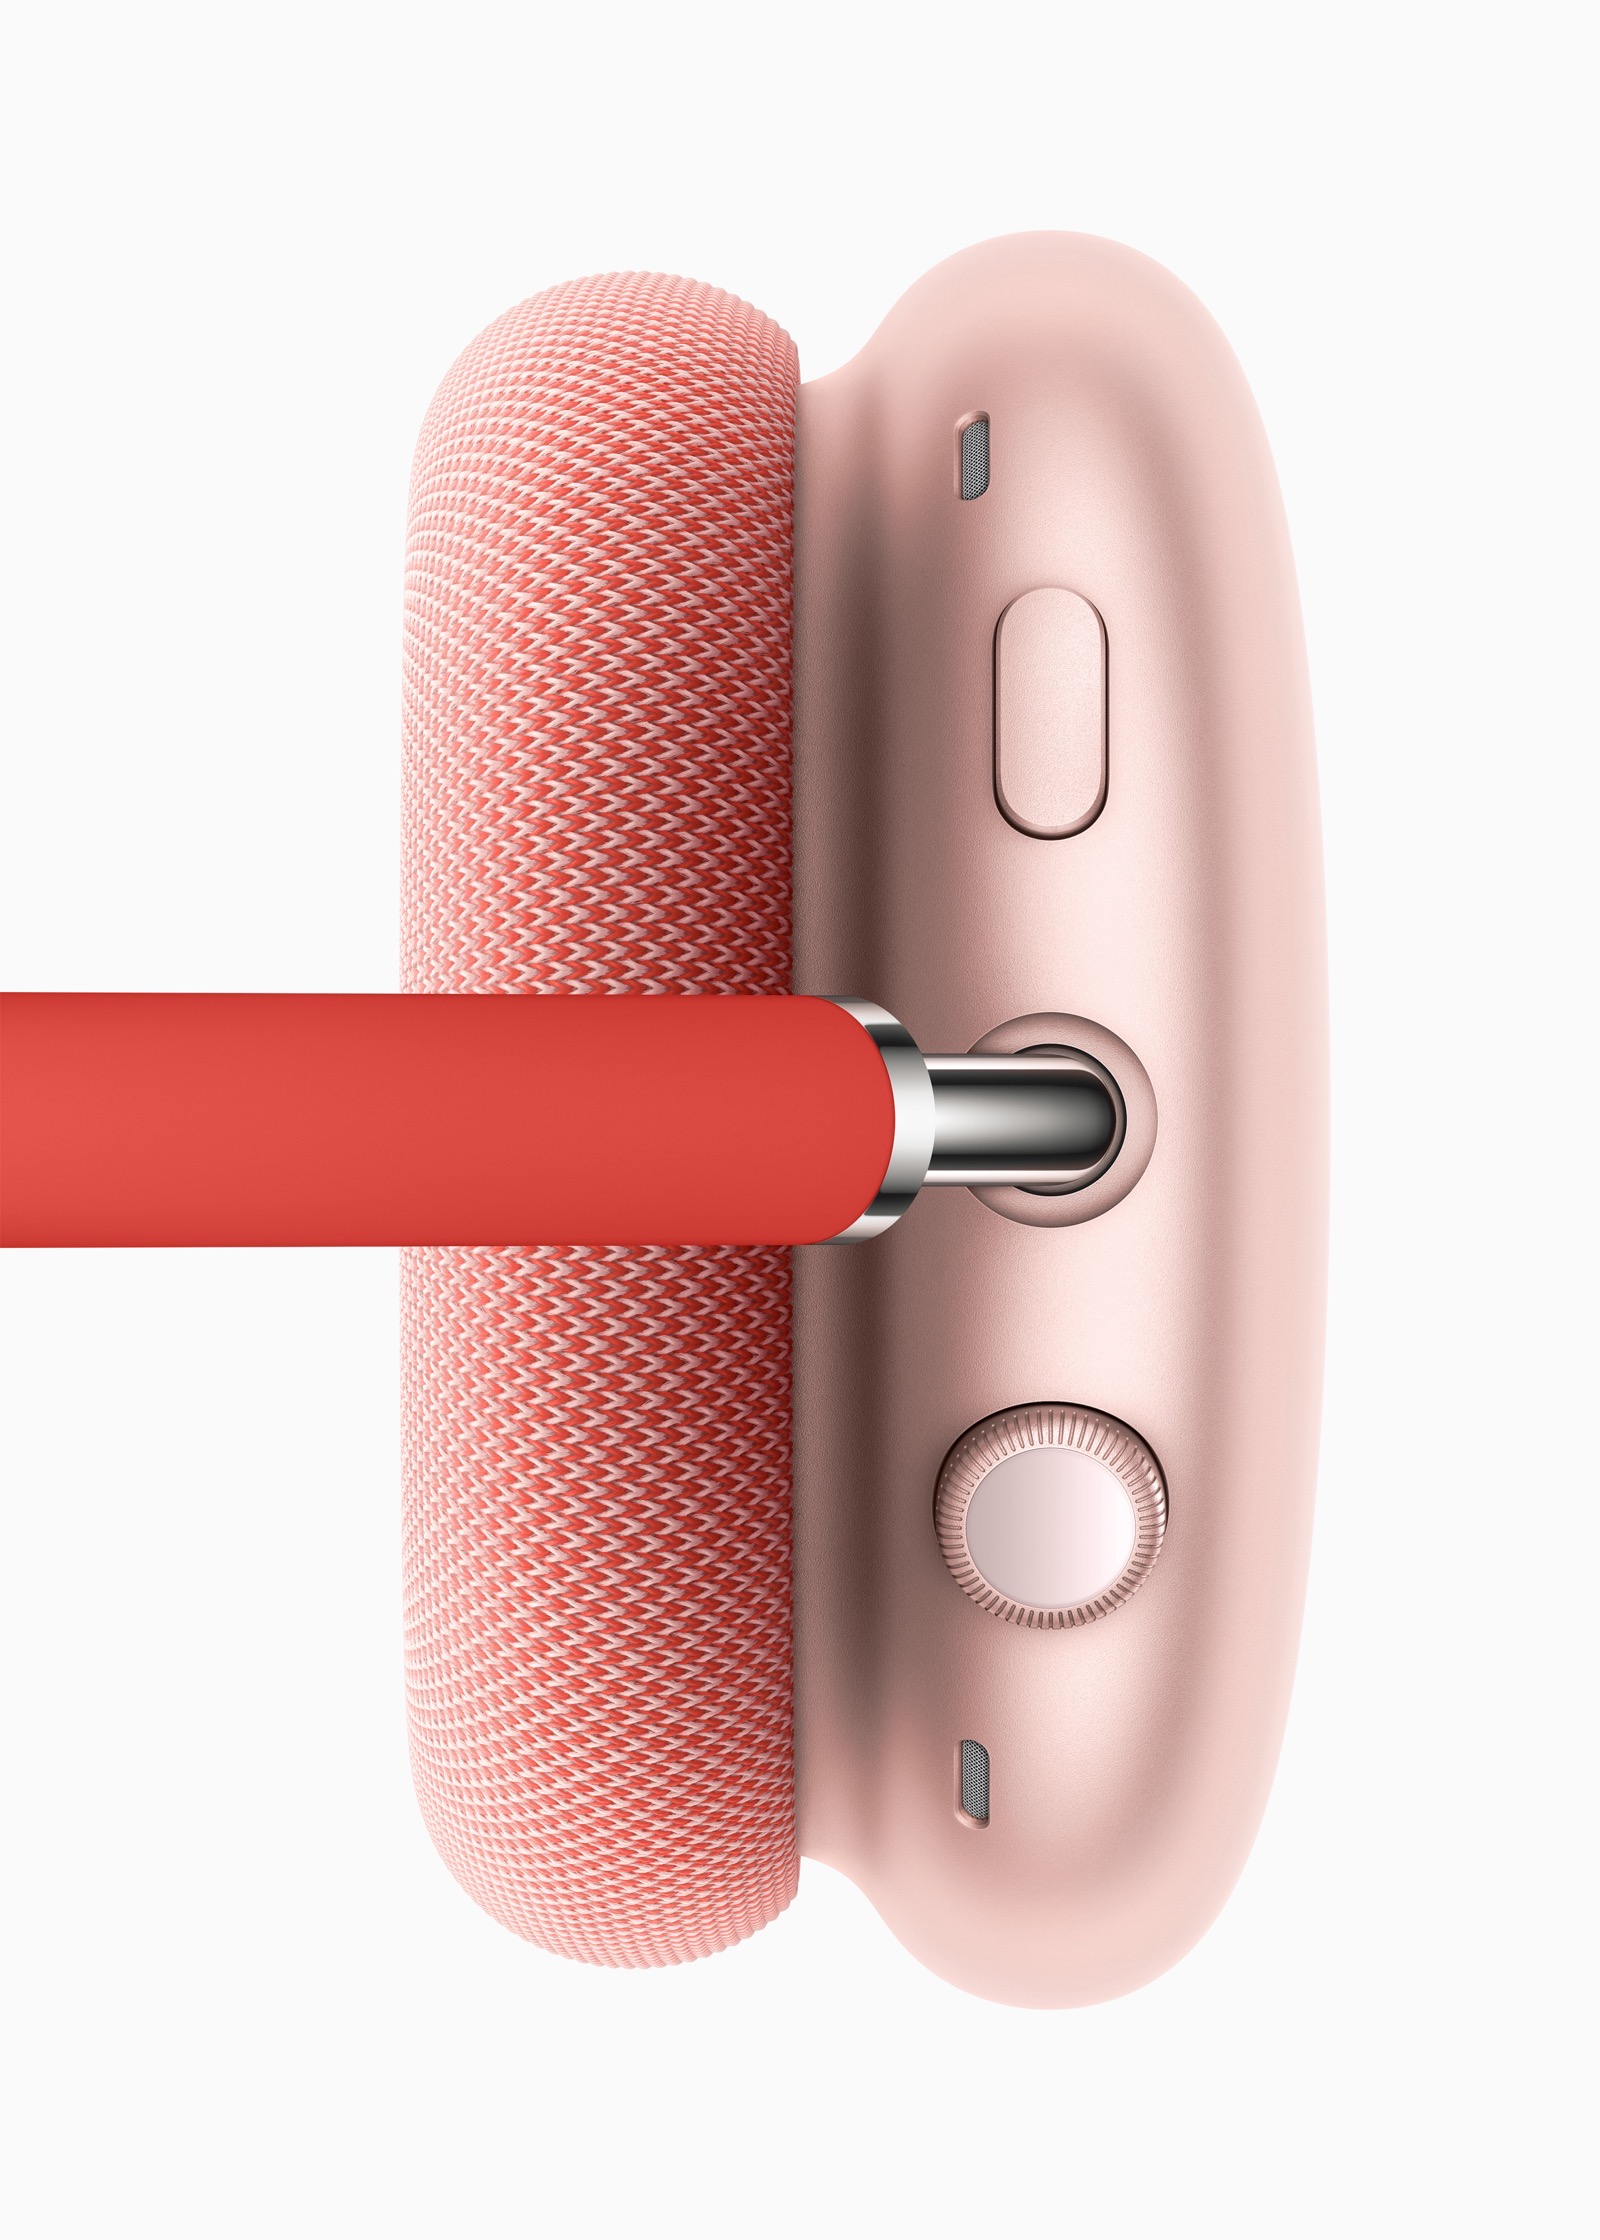 Apple airpods max top red 12082020